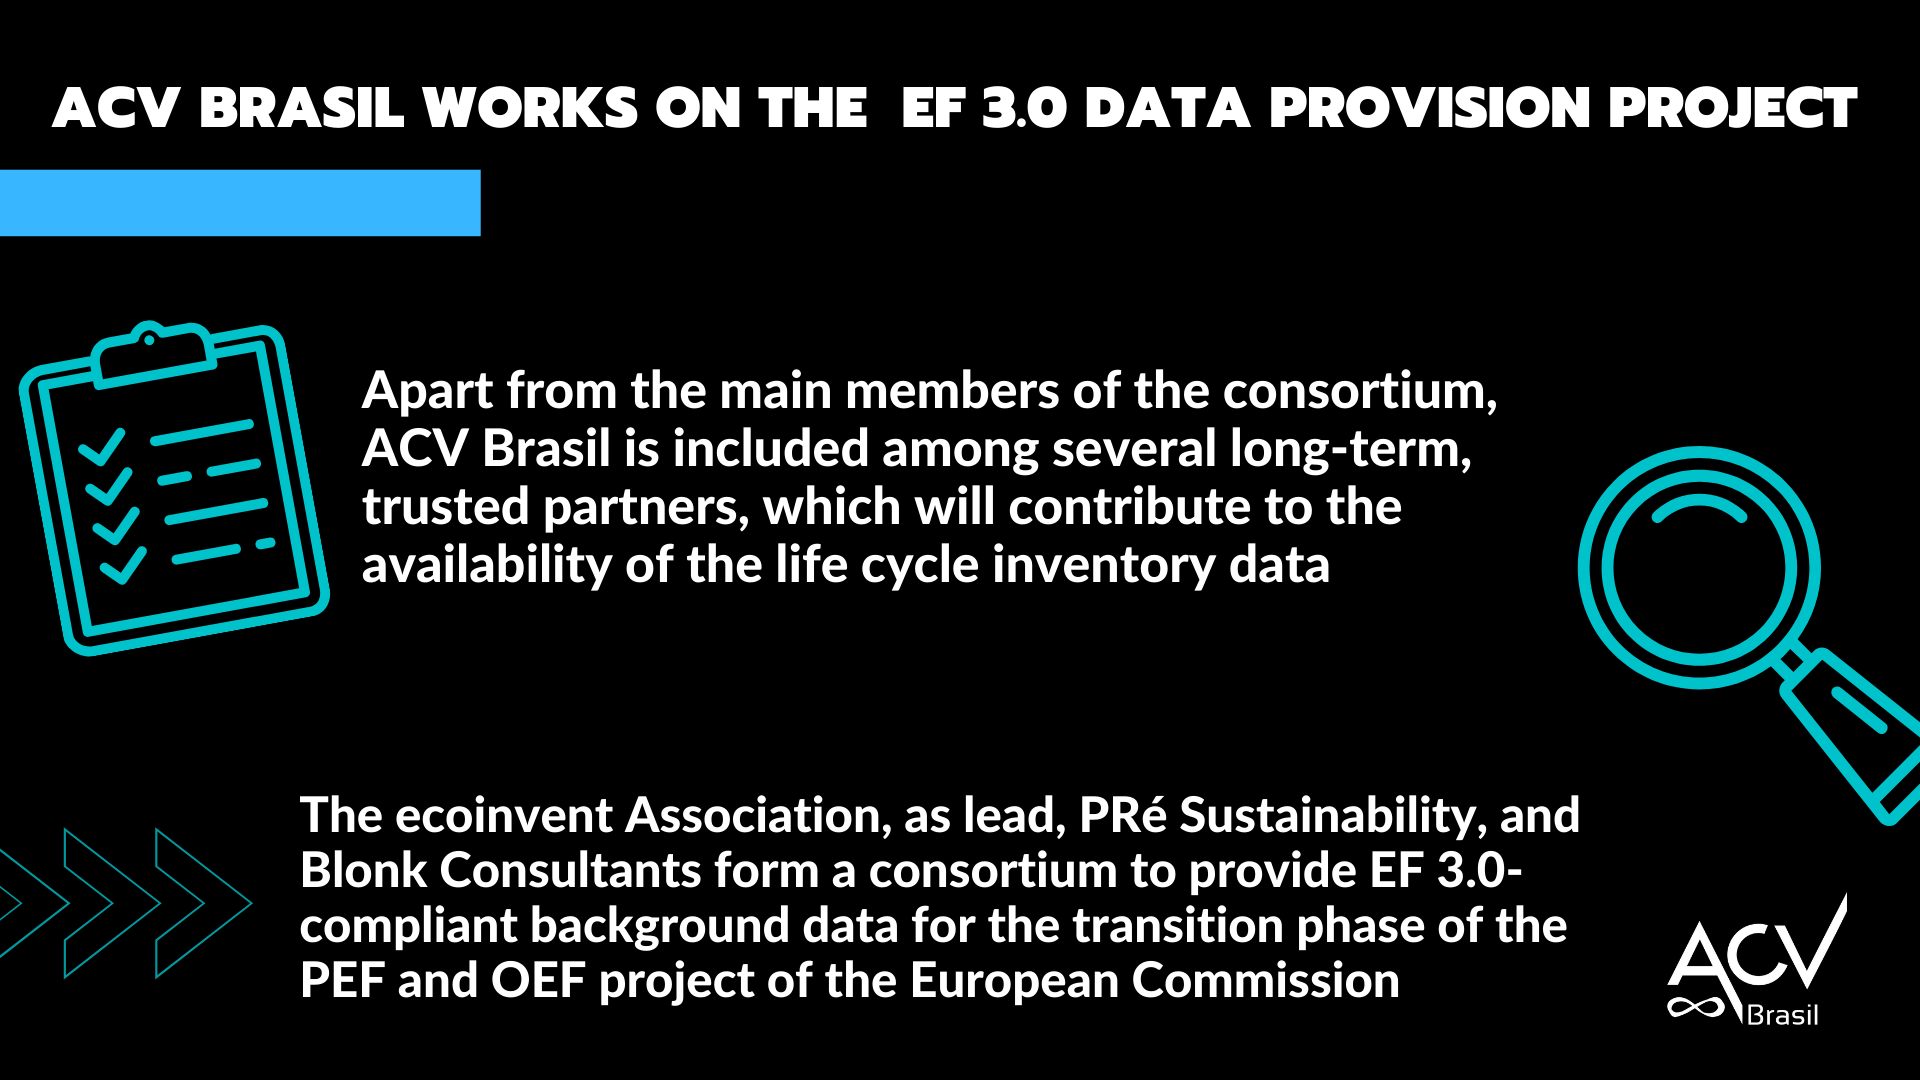 ACV Brasil works on the EF 3.0 Data Provision project led by ecoinvent